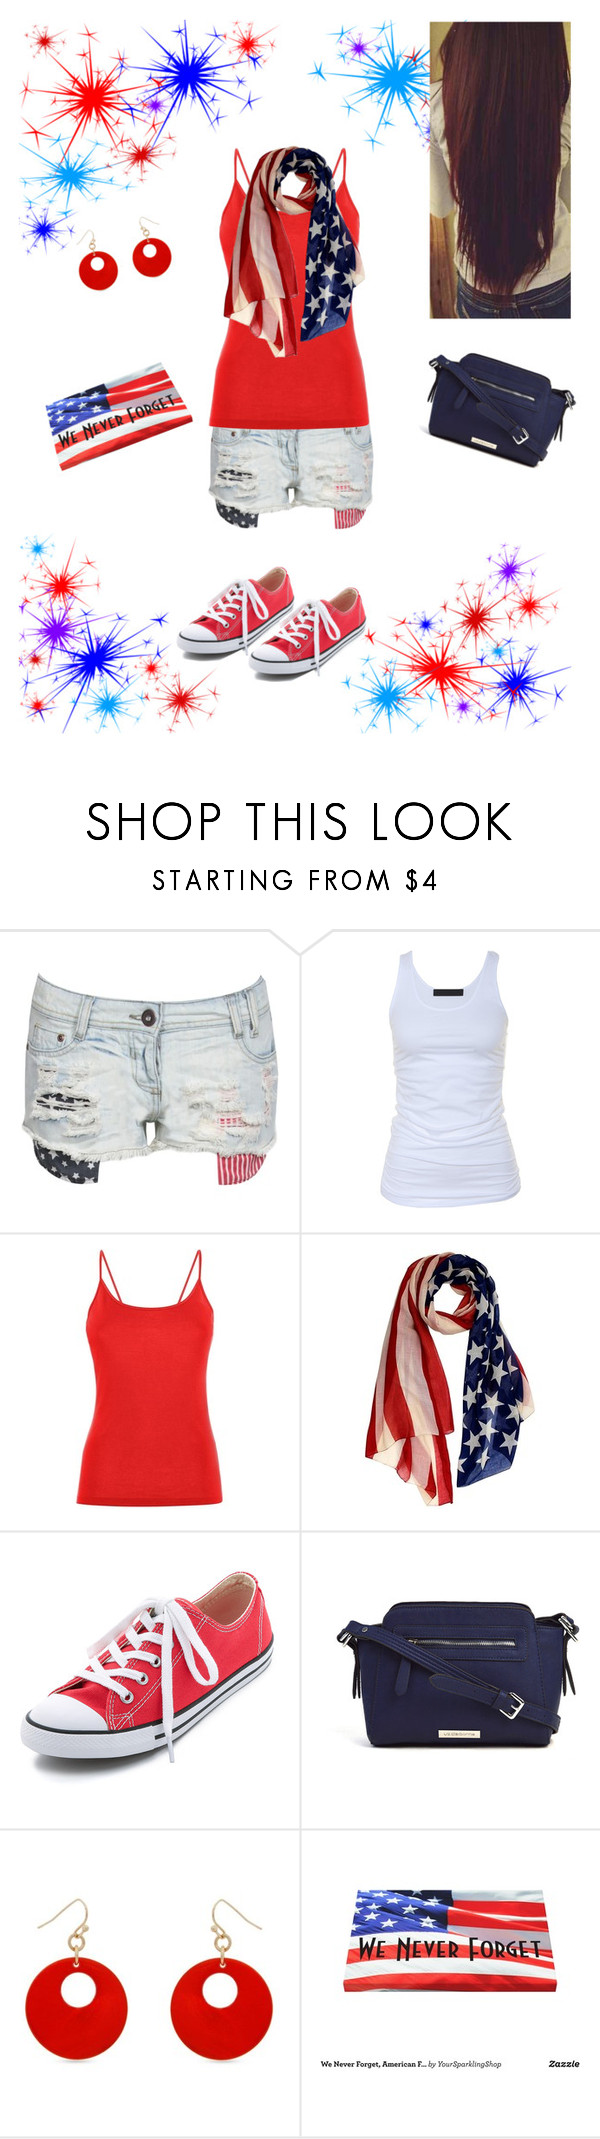 """""""Independence Day!"""" by alzawacki ❤ liked on Polyvore featuring Tusnelda Bloch, Converse, Liz Claiborne and Erica Lyons"""